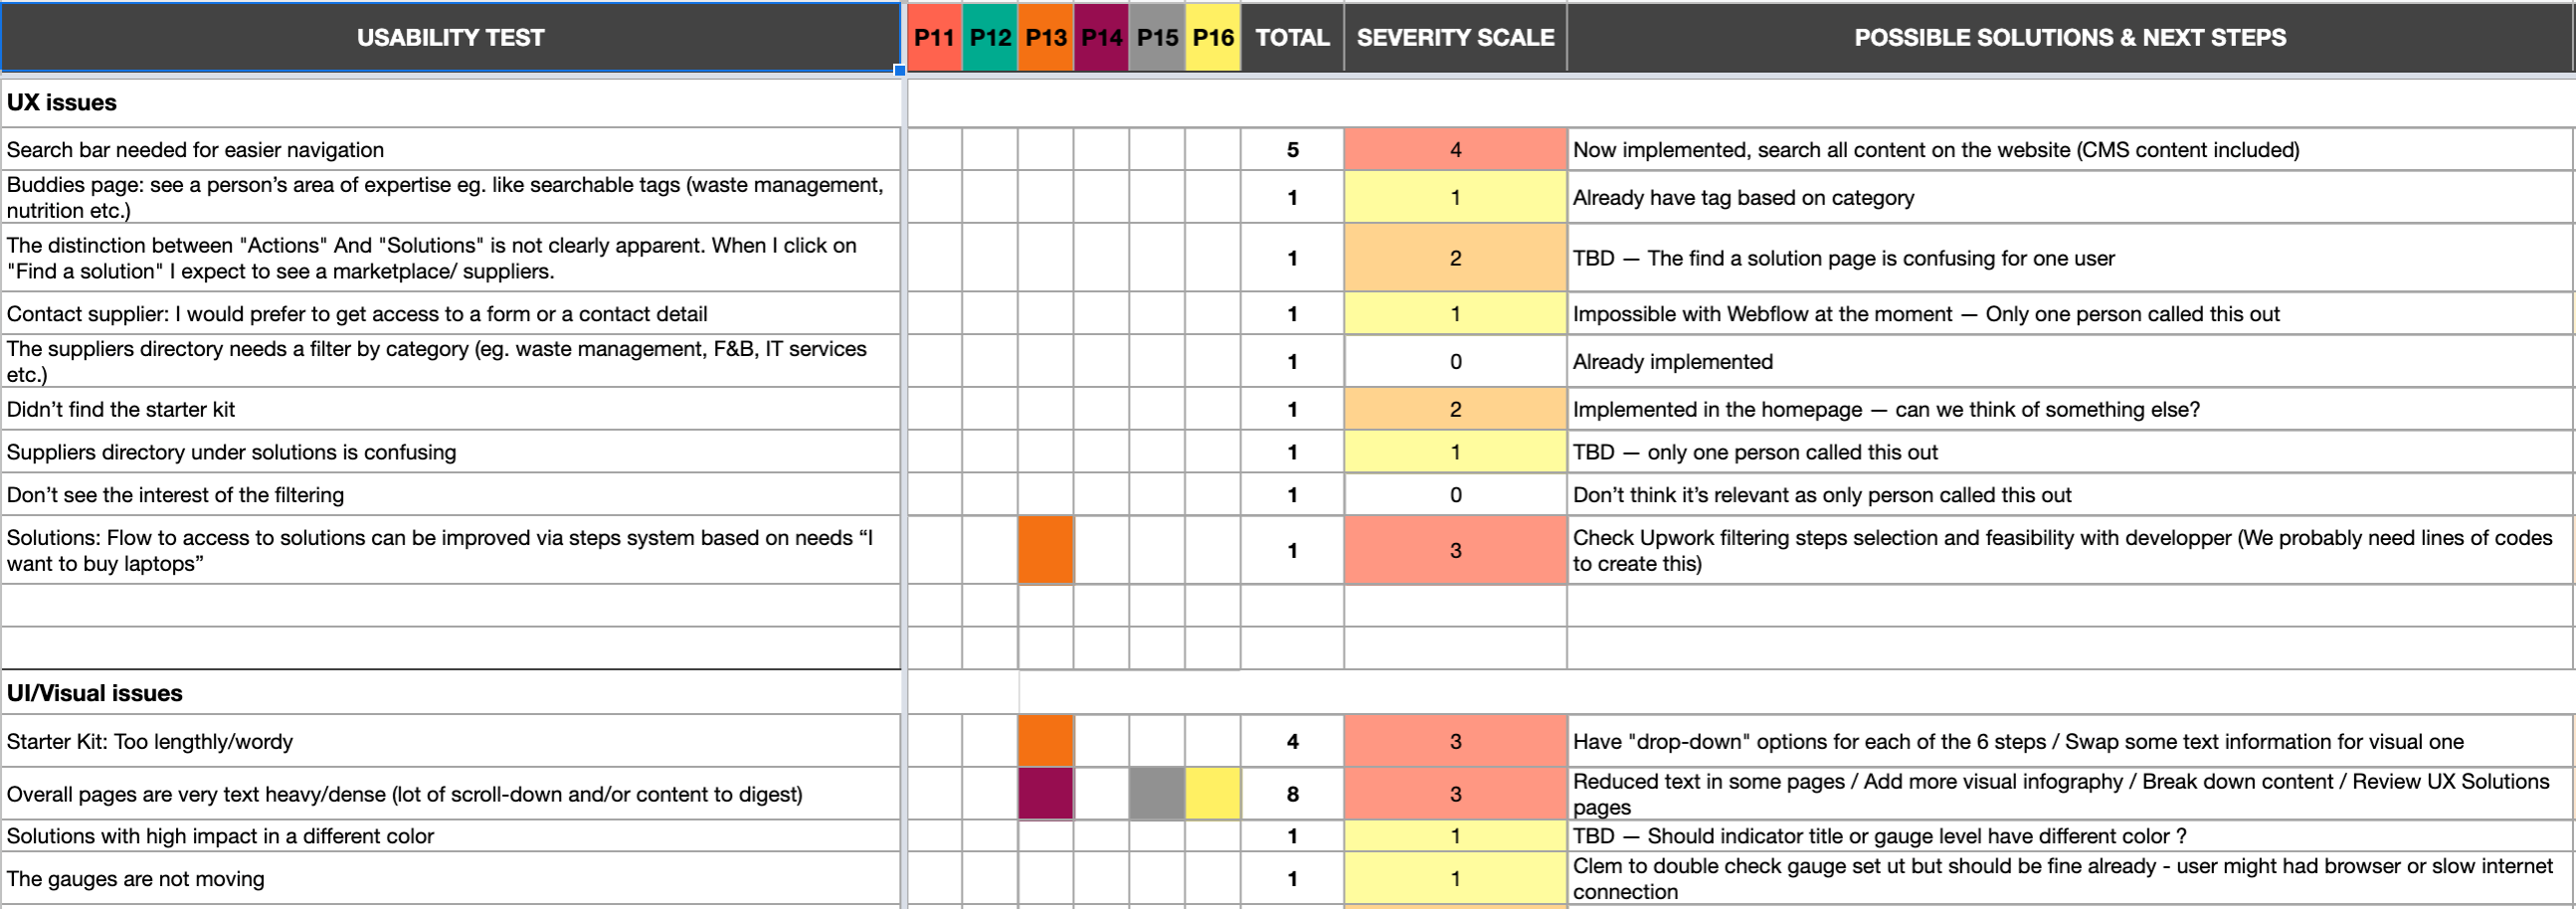 Rainbow Spreadsheet - Identify the severity of issues from the usability test